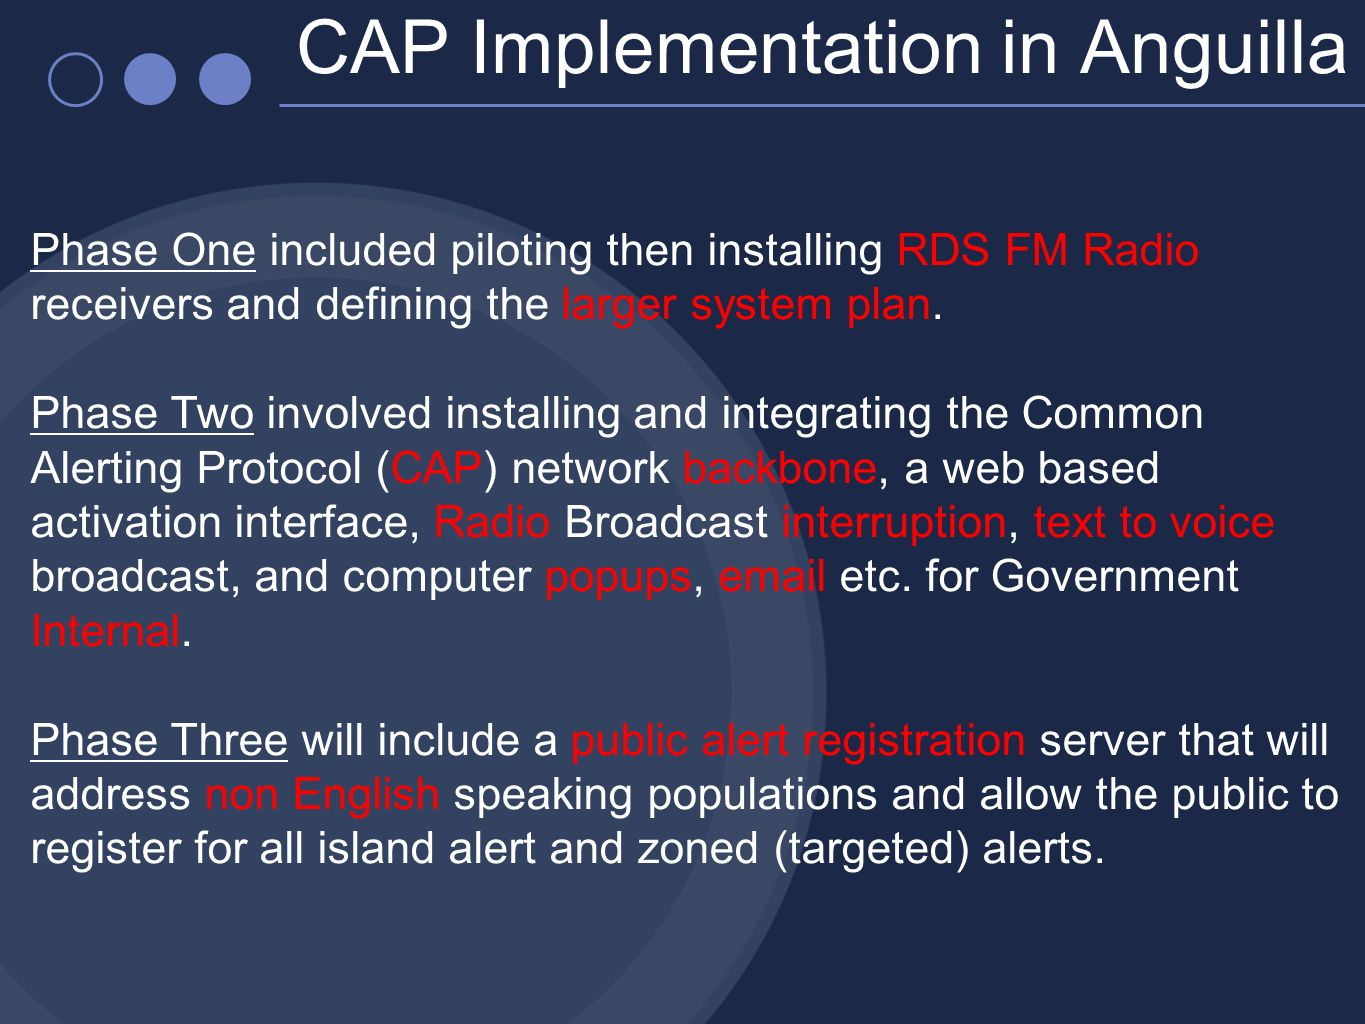 CAP Implementation in Anguilla Phase One included piloting then installing RDS FM Radio receivers and defining the larger system plan. Phase Two invol